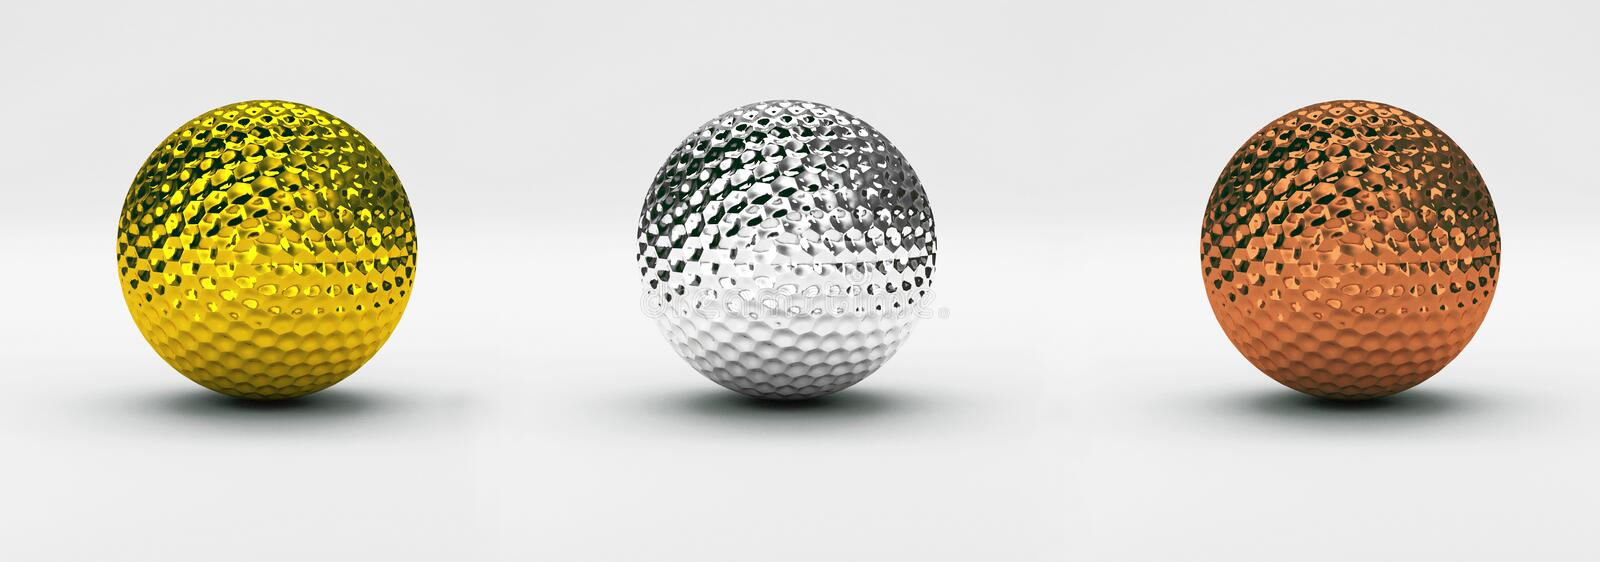 Download Golf ball stock image. Image of team, match, score, looser - 3984935